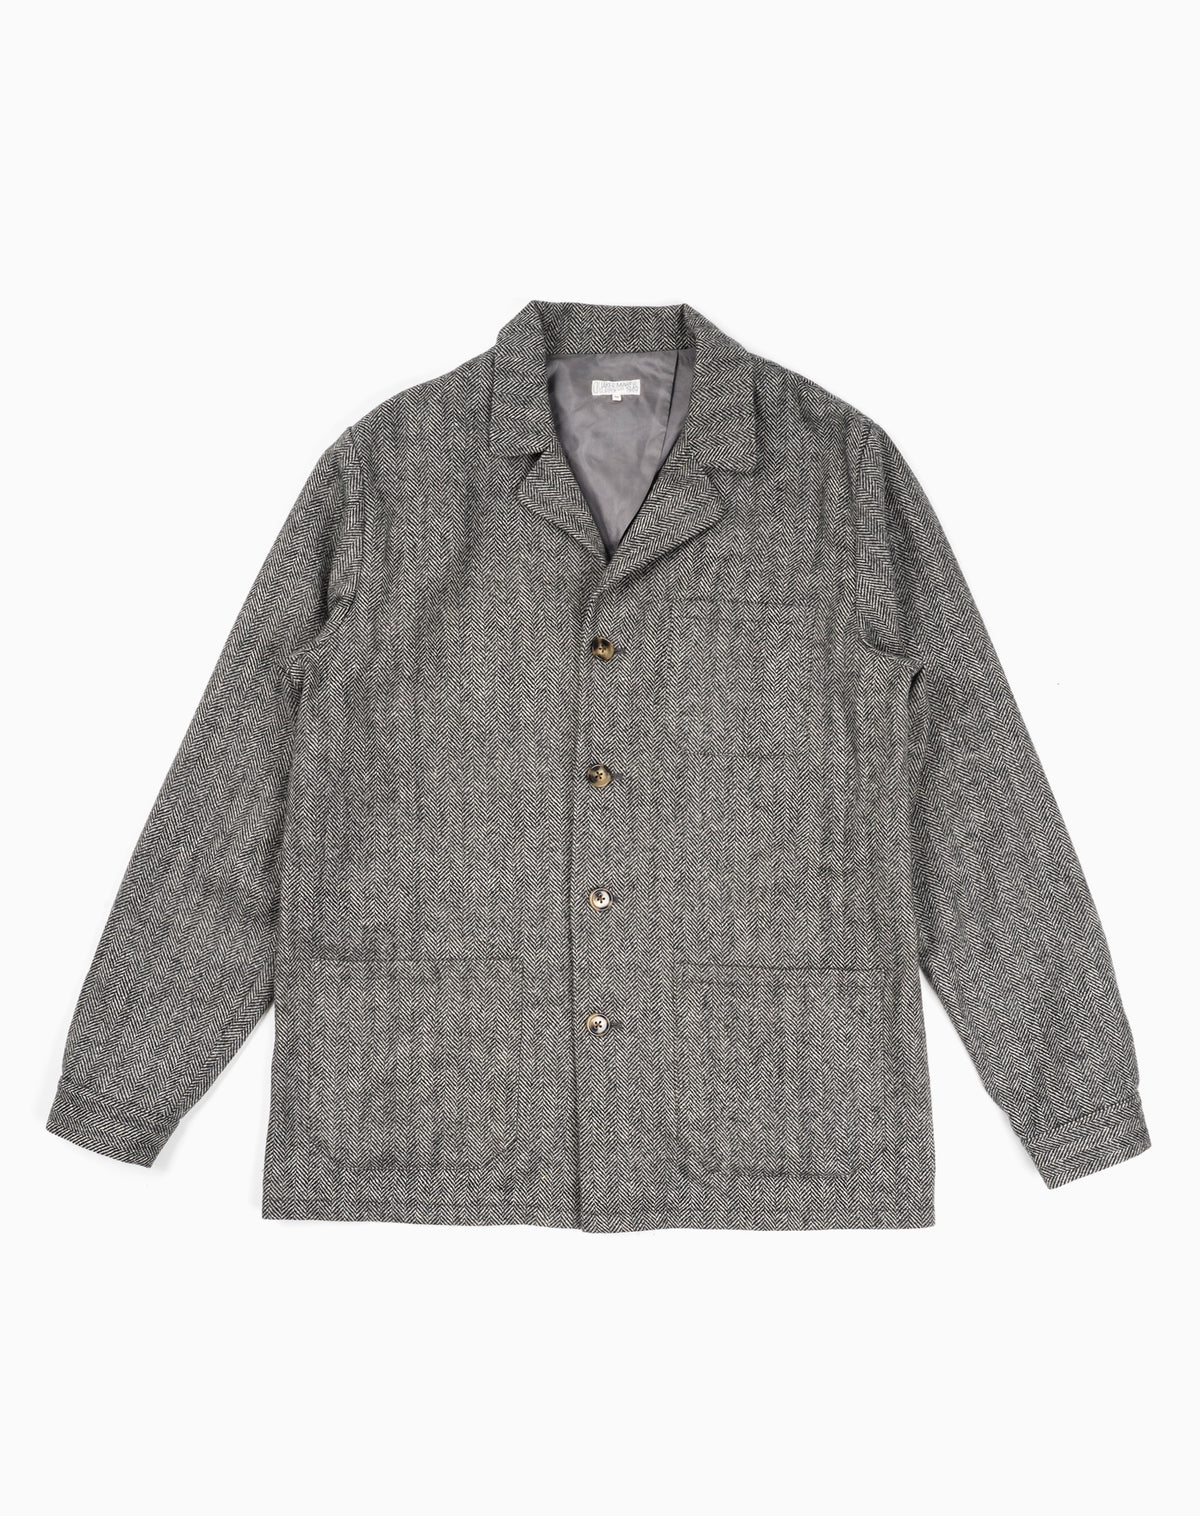 Loafer Jacket in Herringbone Wool